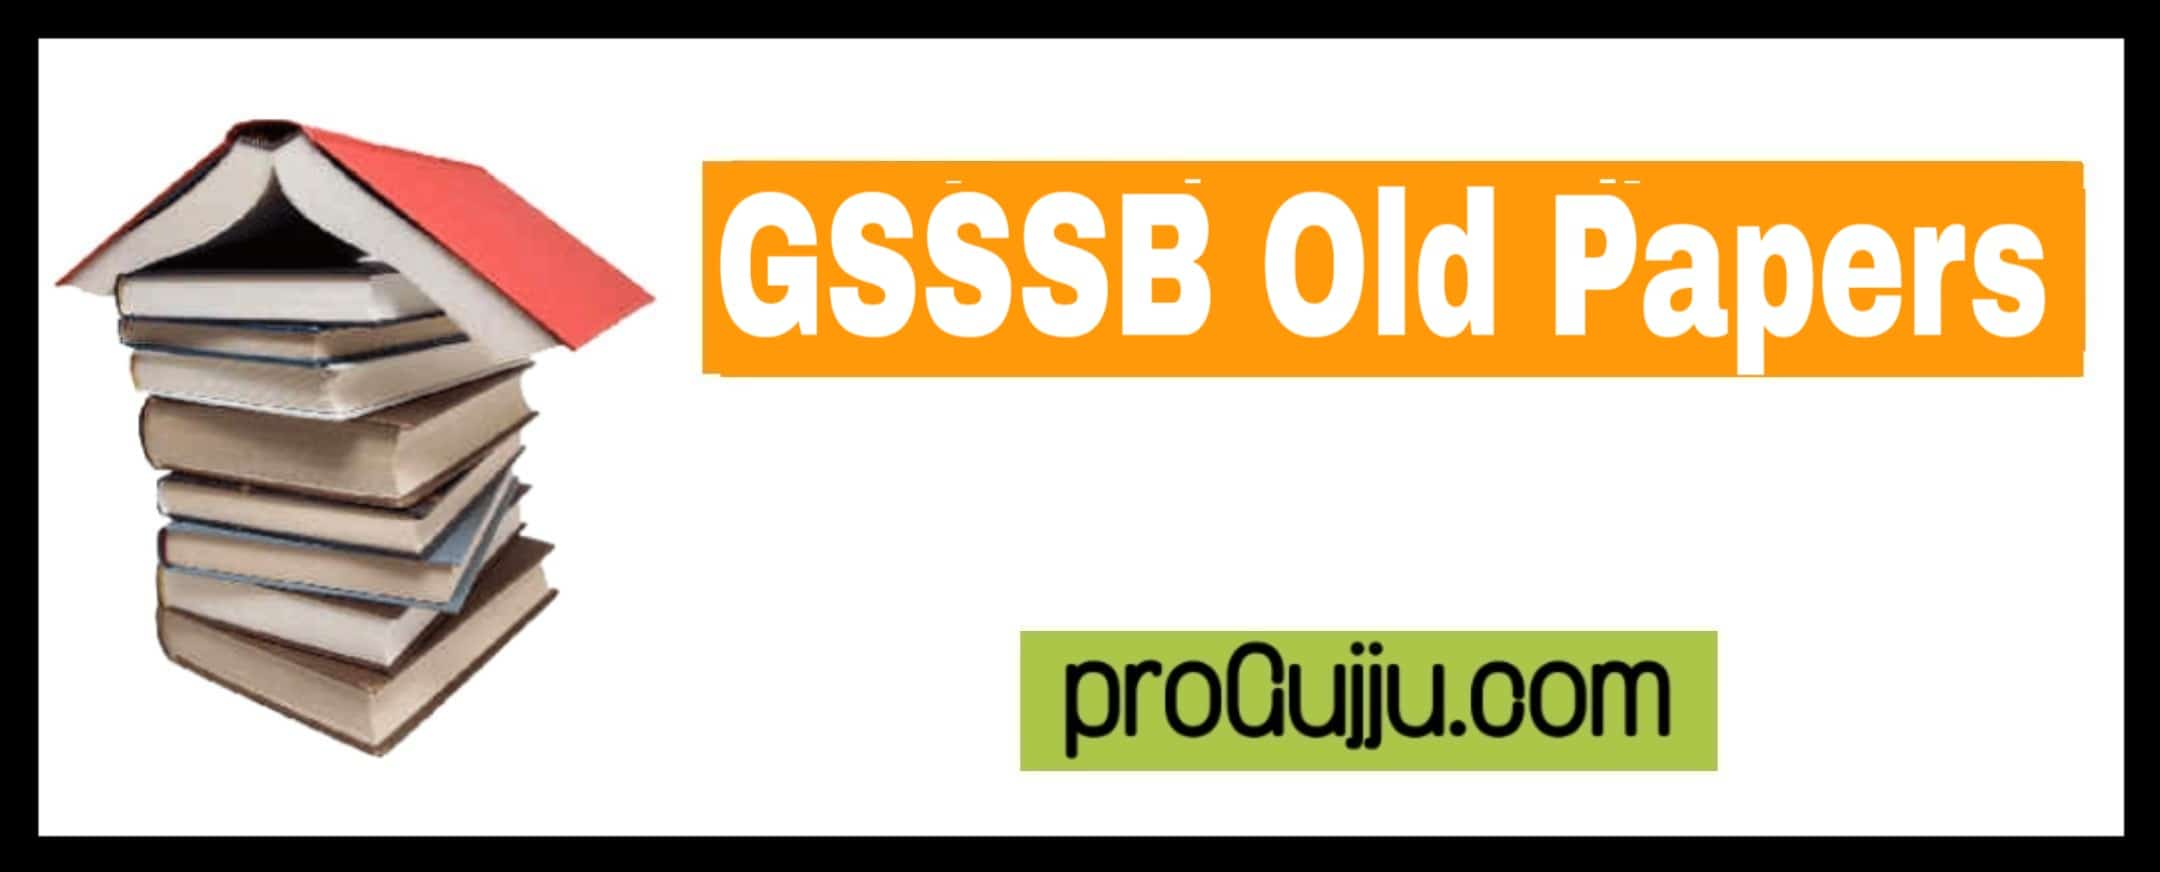 GSSSB Old Papers